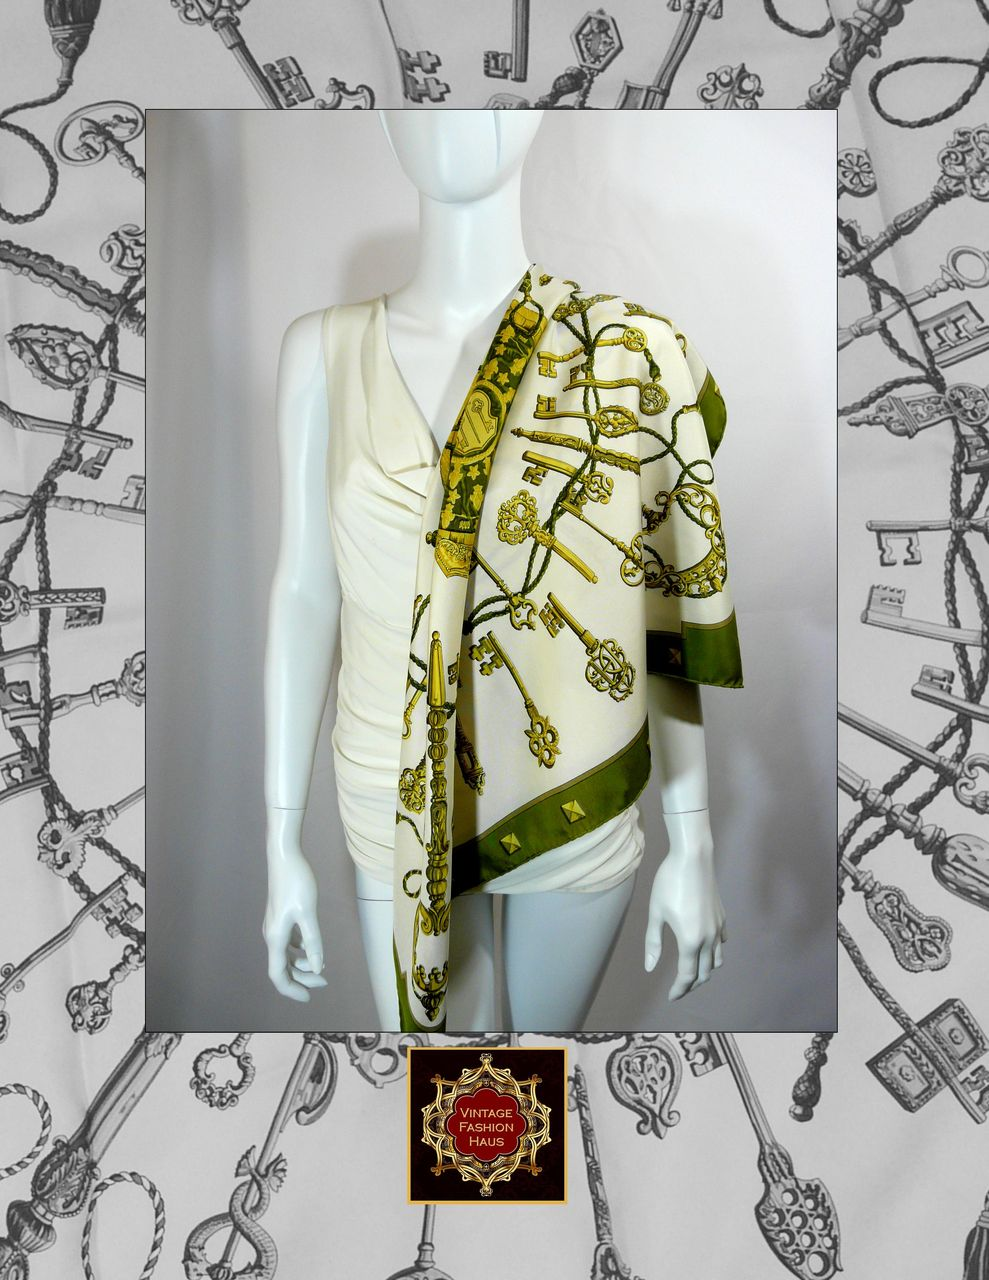 Authentic Vintage Hermes Silk Scarf LES CLS  Olive  Great Value Authentic Vintage Hermes Scarves